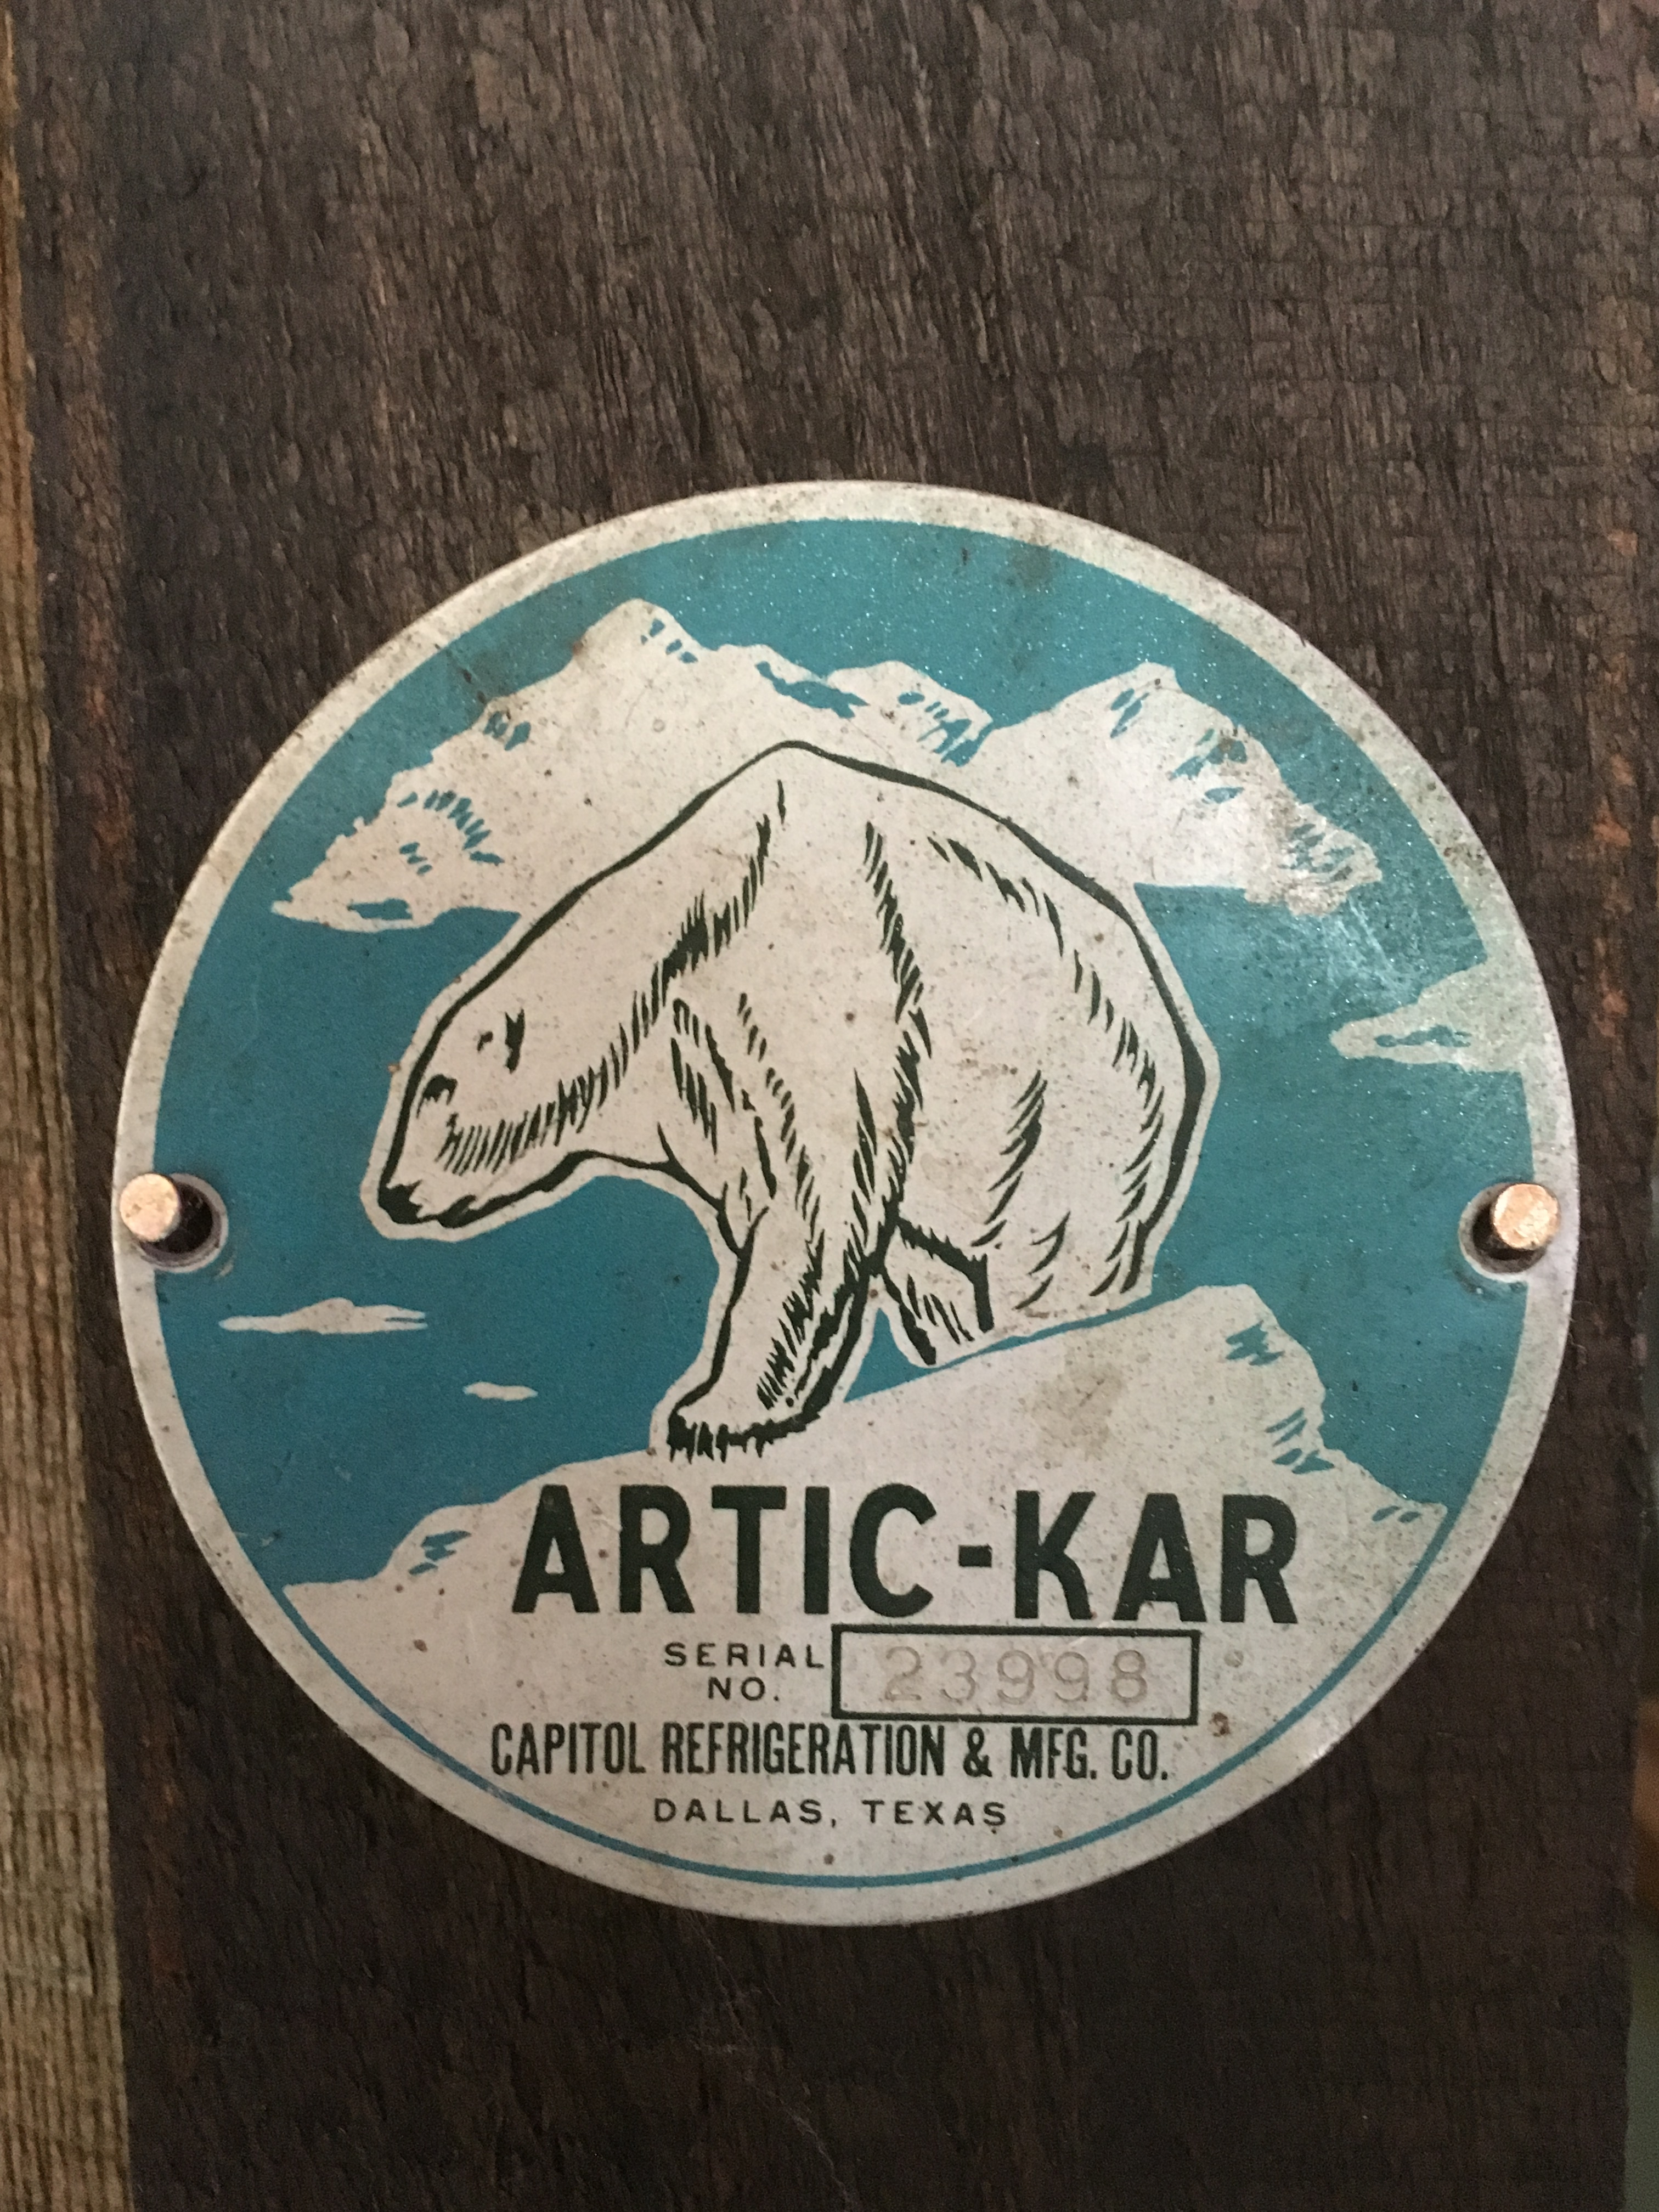 Artic-Kar name plate